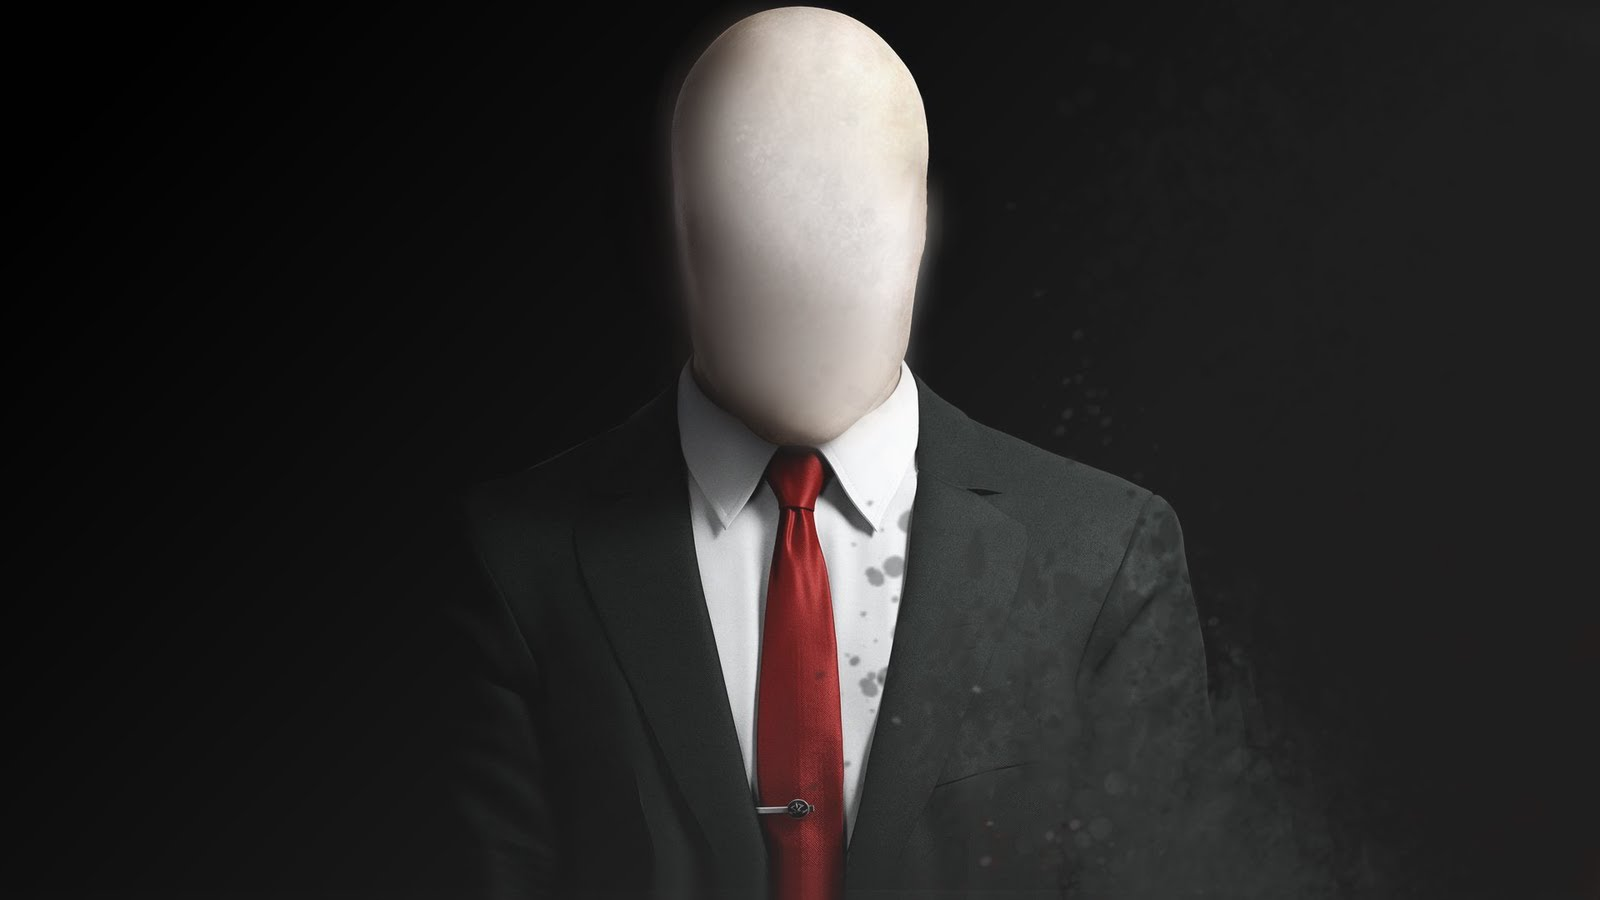 Beware the Slenderman, il documentario sul fenomeno di internet